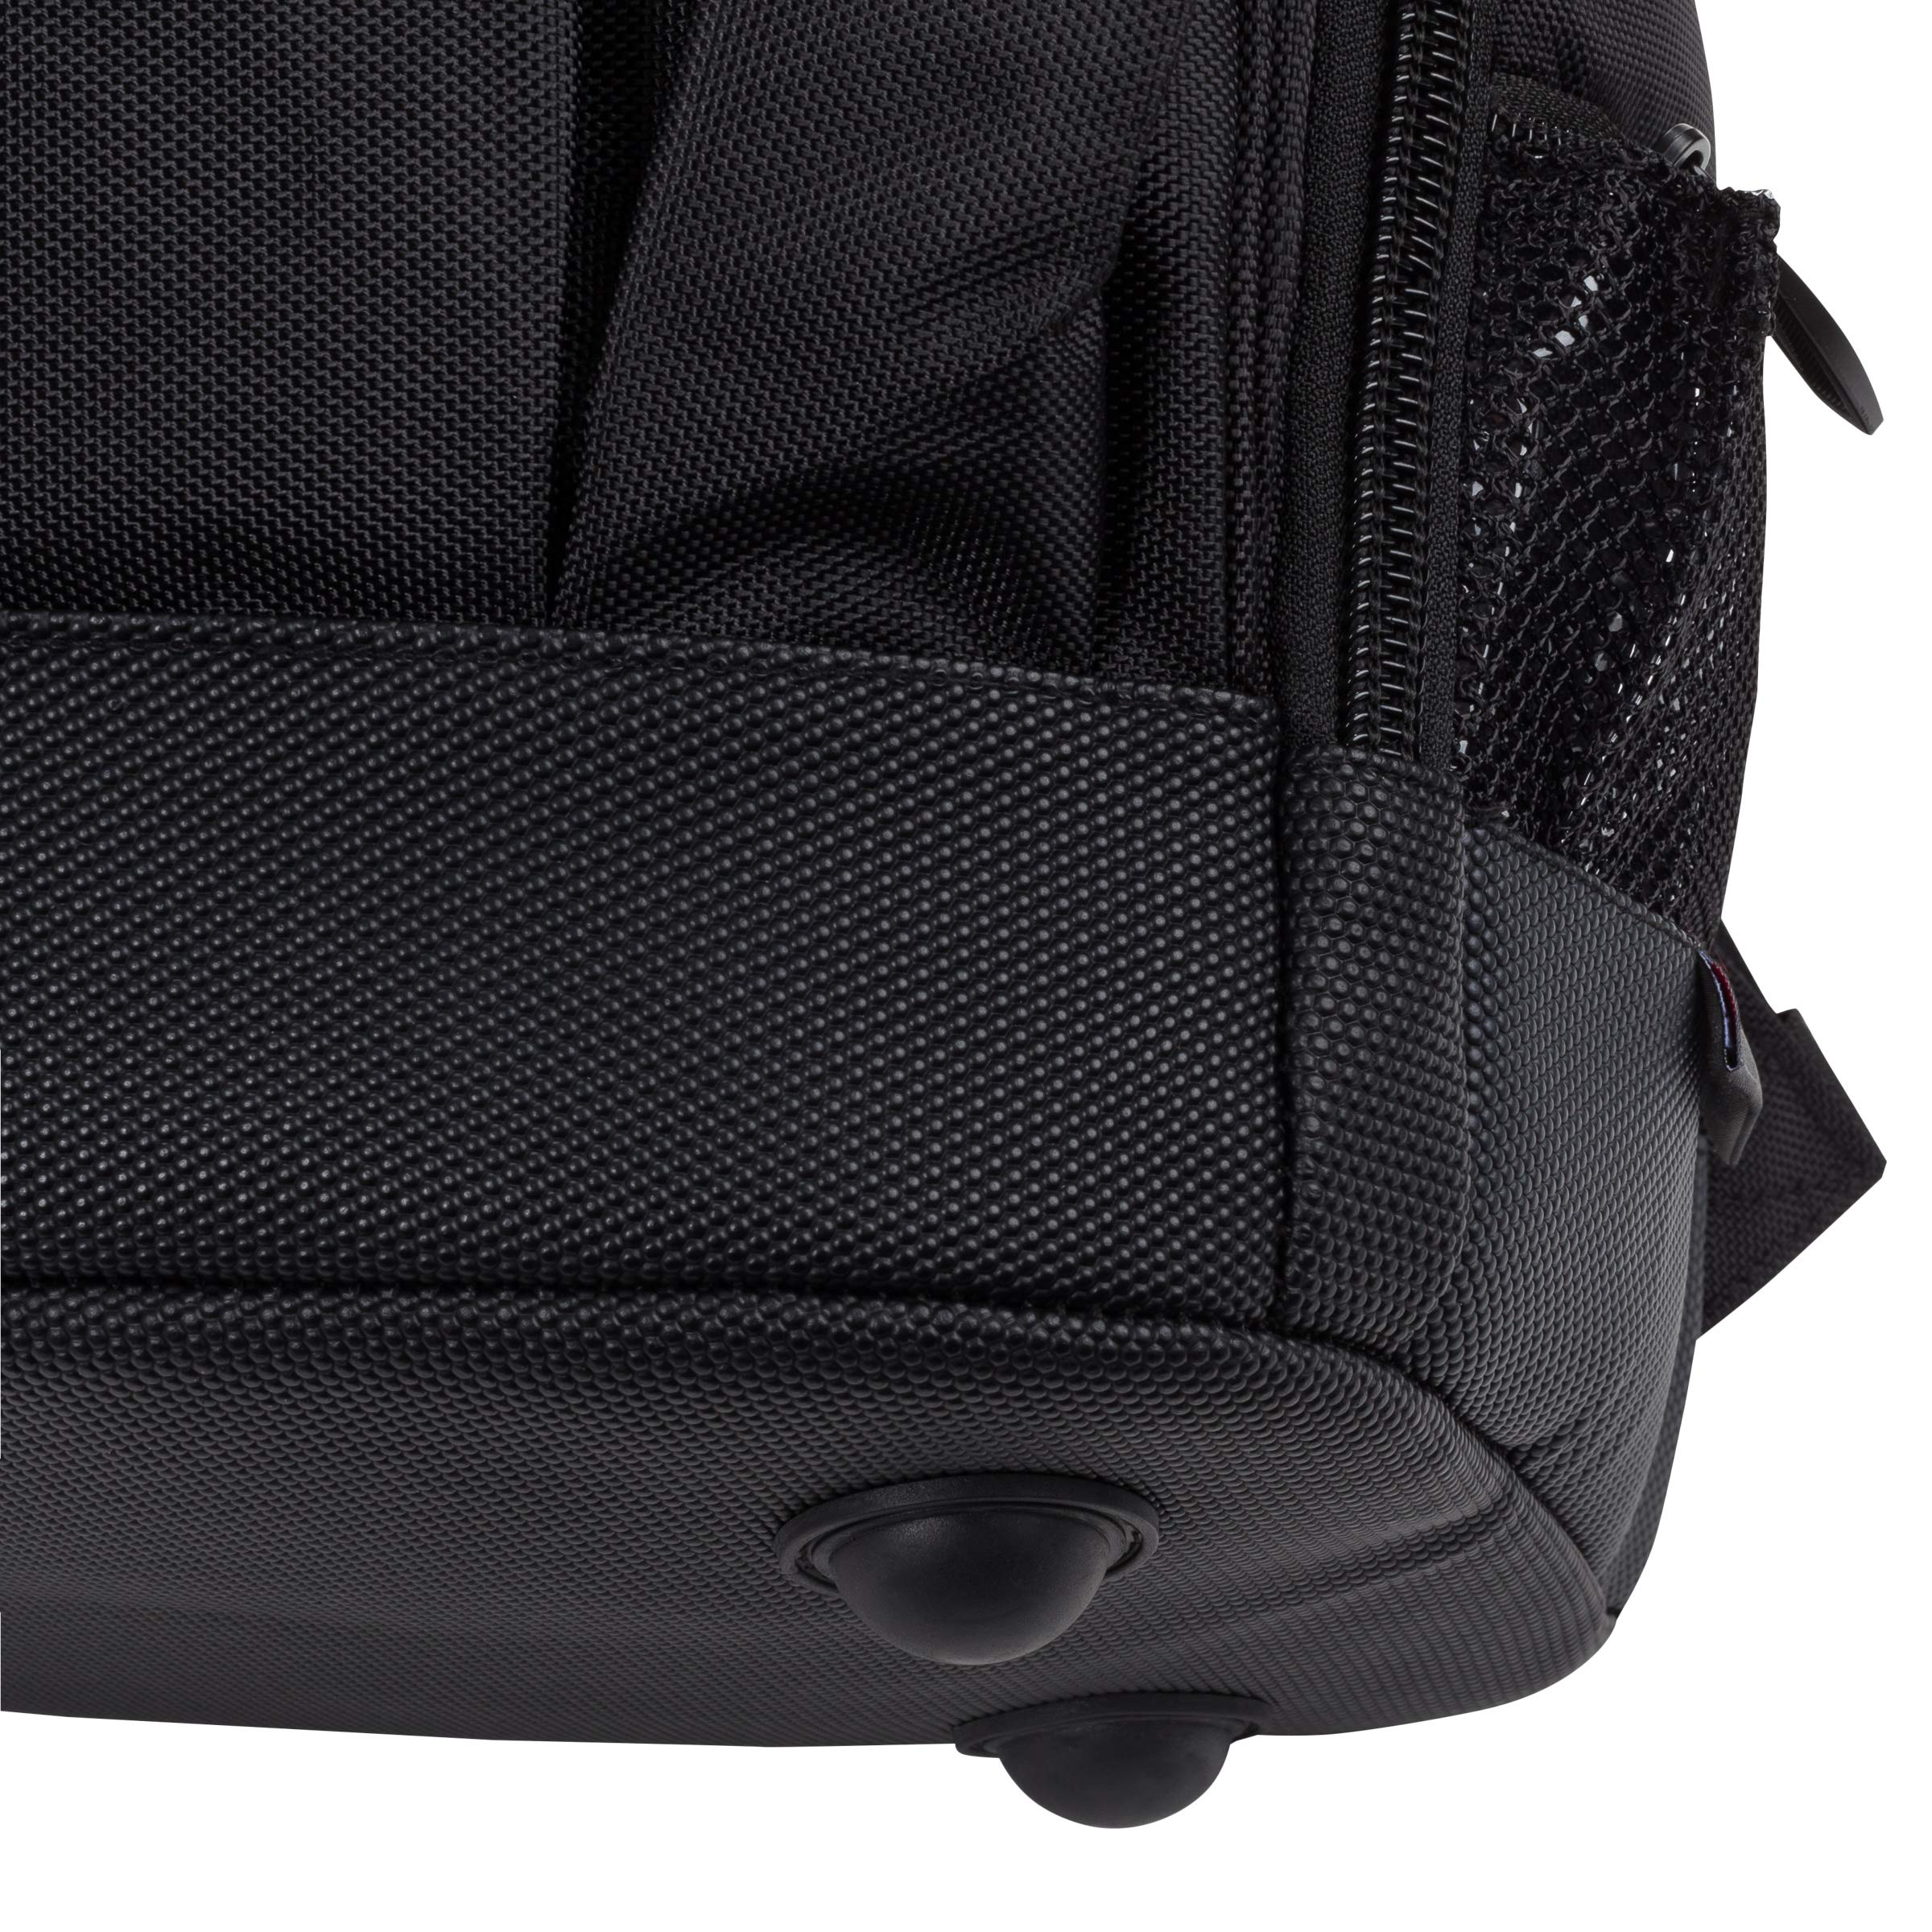 SWISSGEAR 2767 Large Durable Work Pack Tool Backpack With Padded Laptop Compartment | Tool Storage, Part Organization, Wet/Dry Pocket - Black by SwissGear (Image #9)